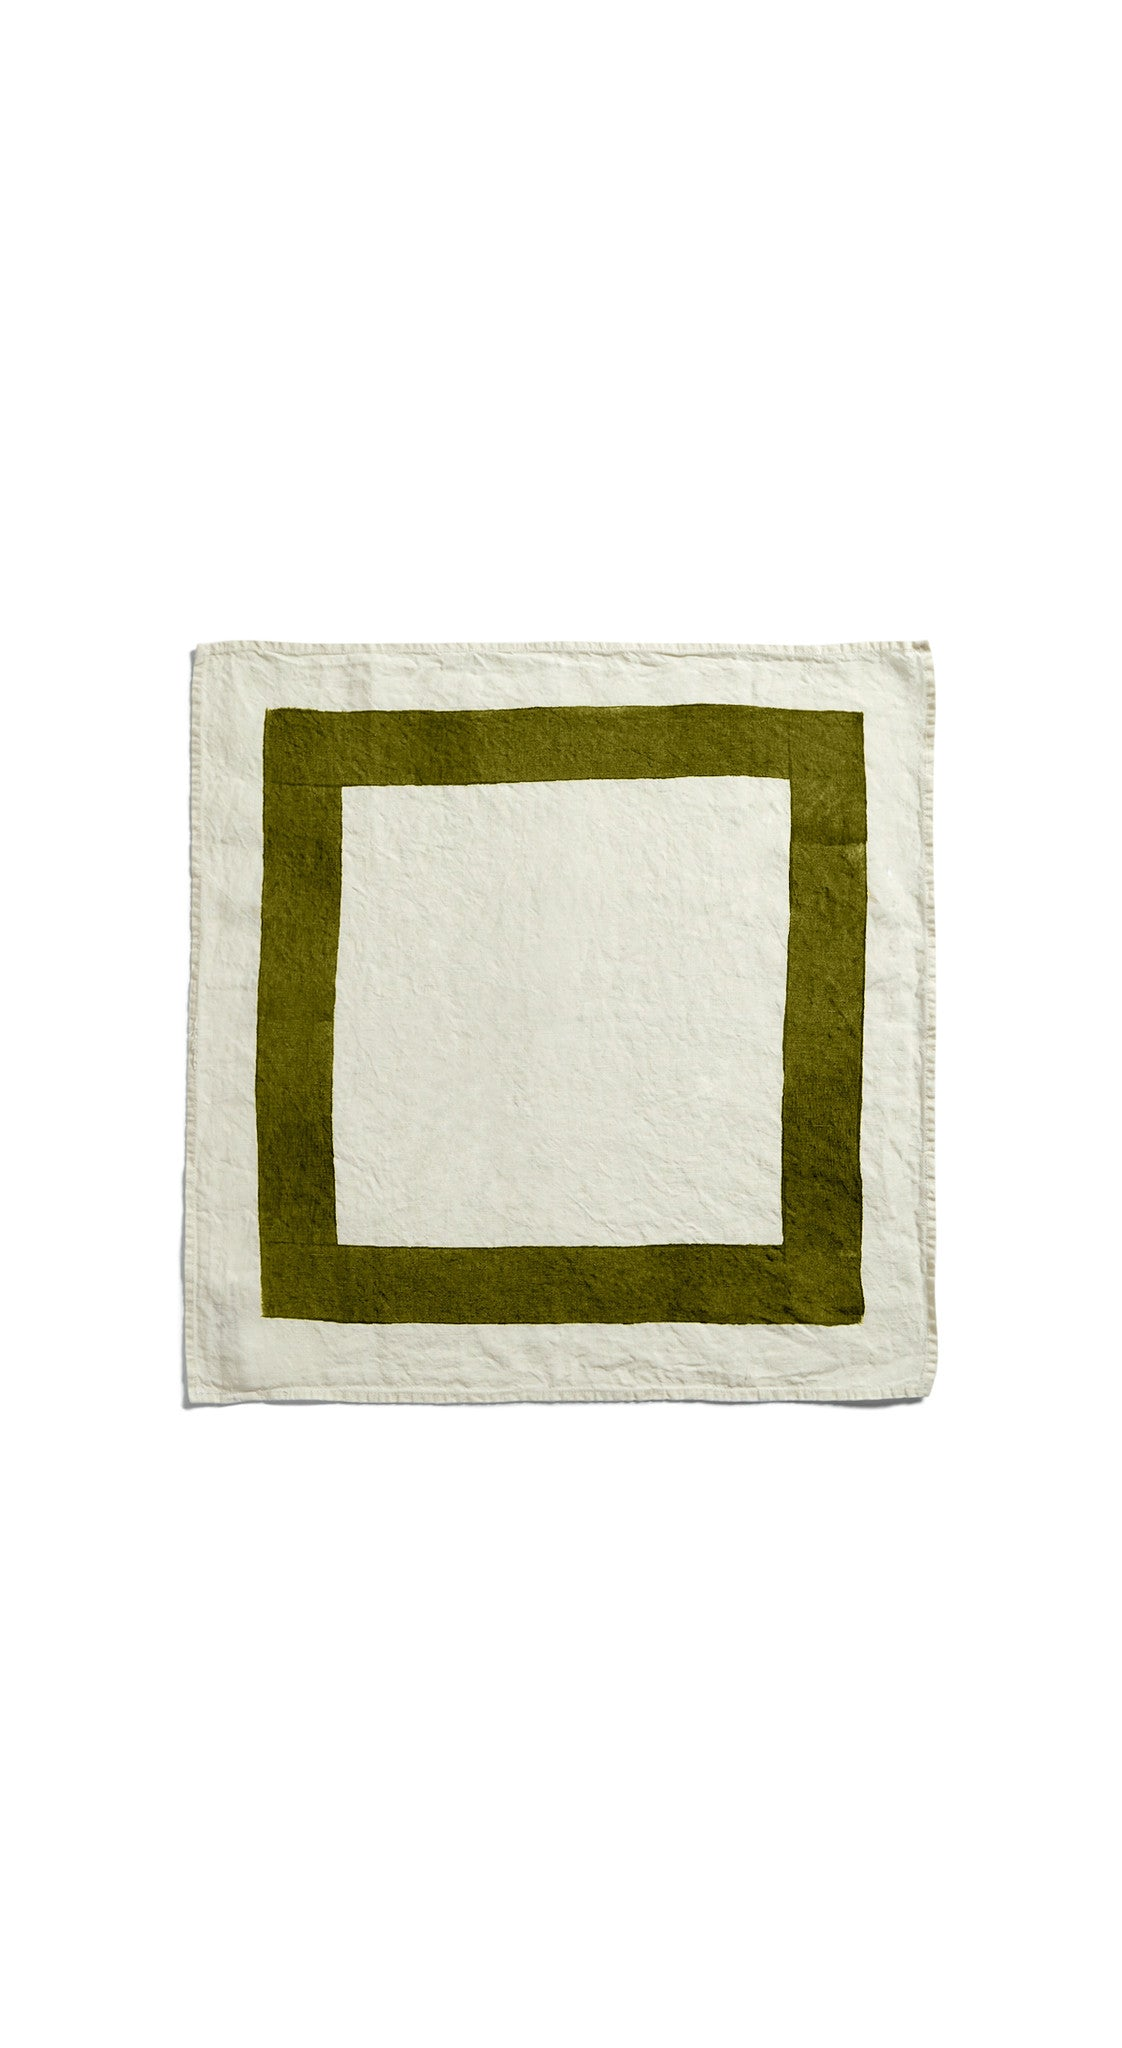 Cornice Linen Napkin in Avocado Green